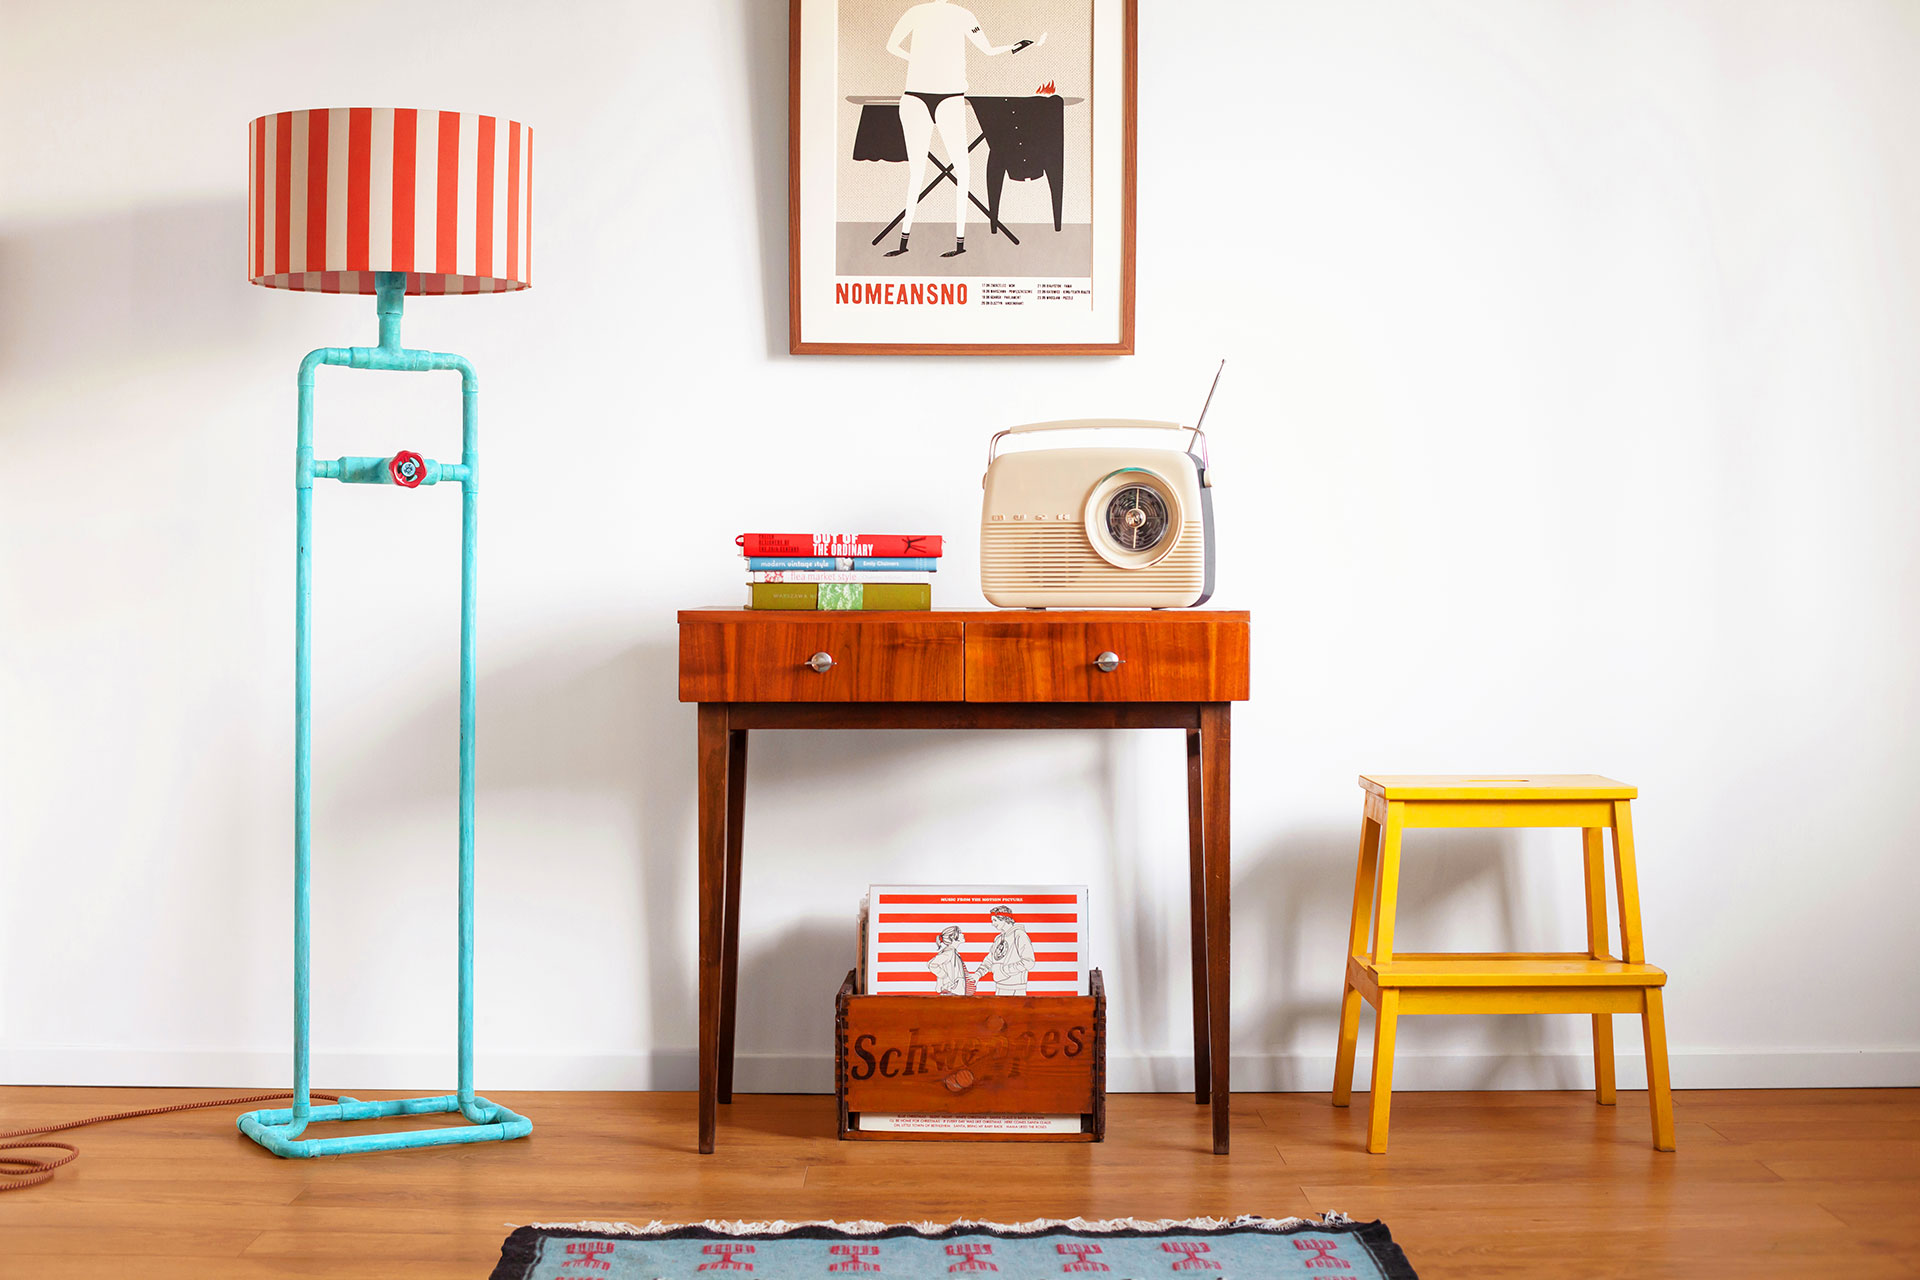 Unique dimmable floor lamp in trendy turquoise patina in mid-century modern apartment